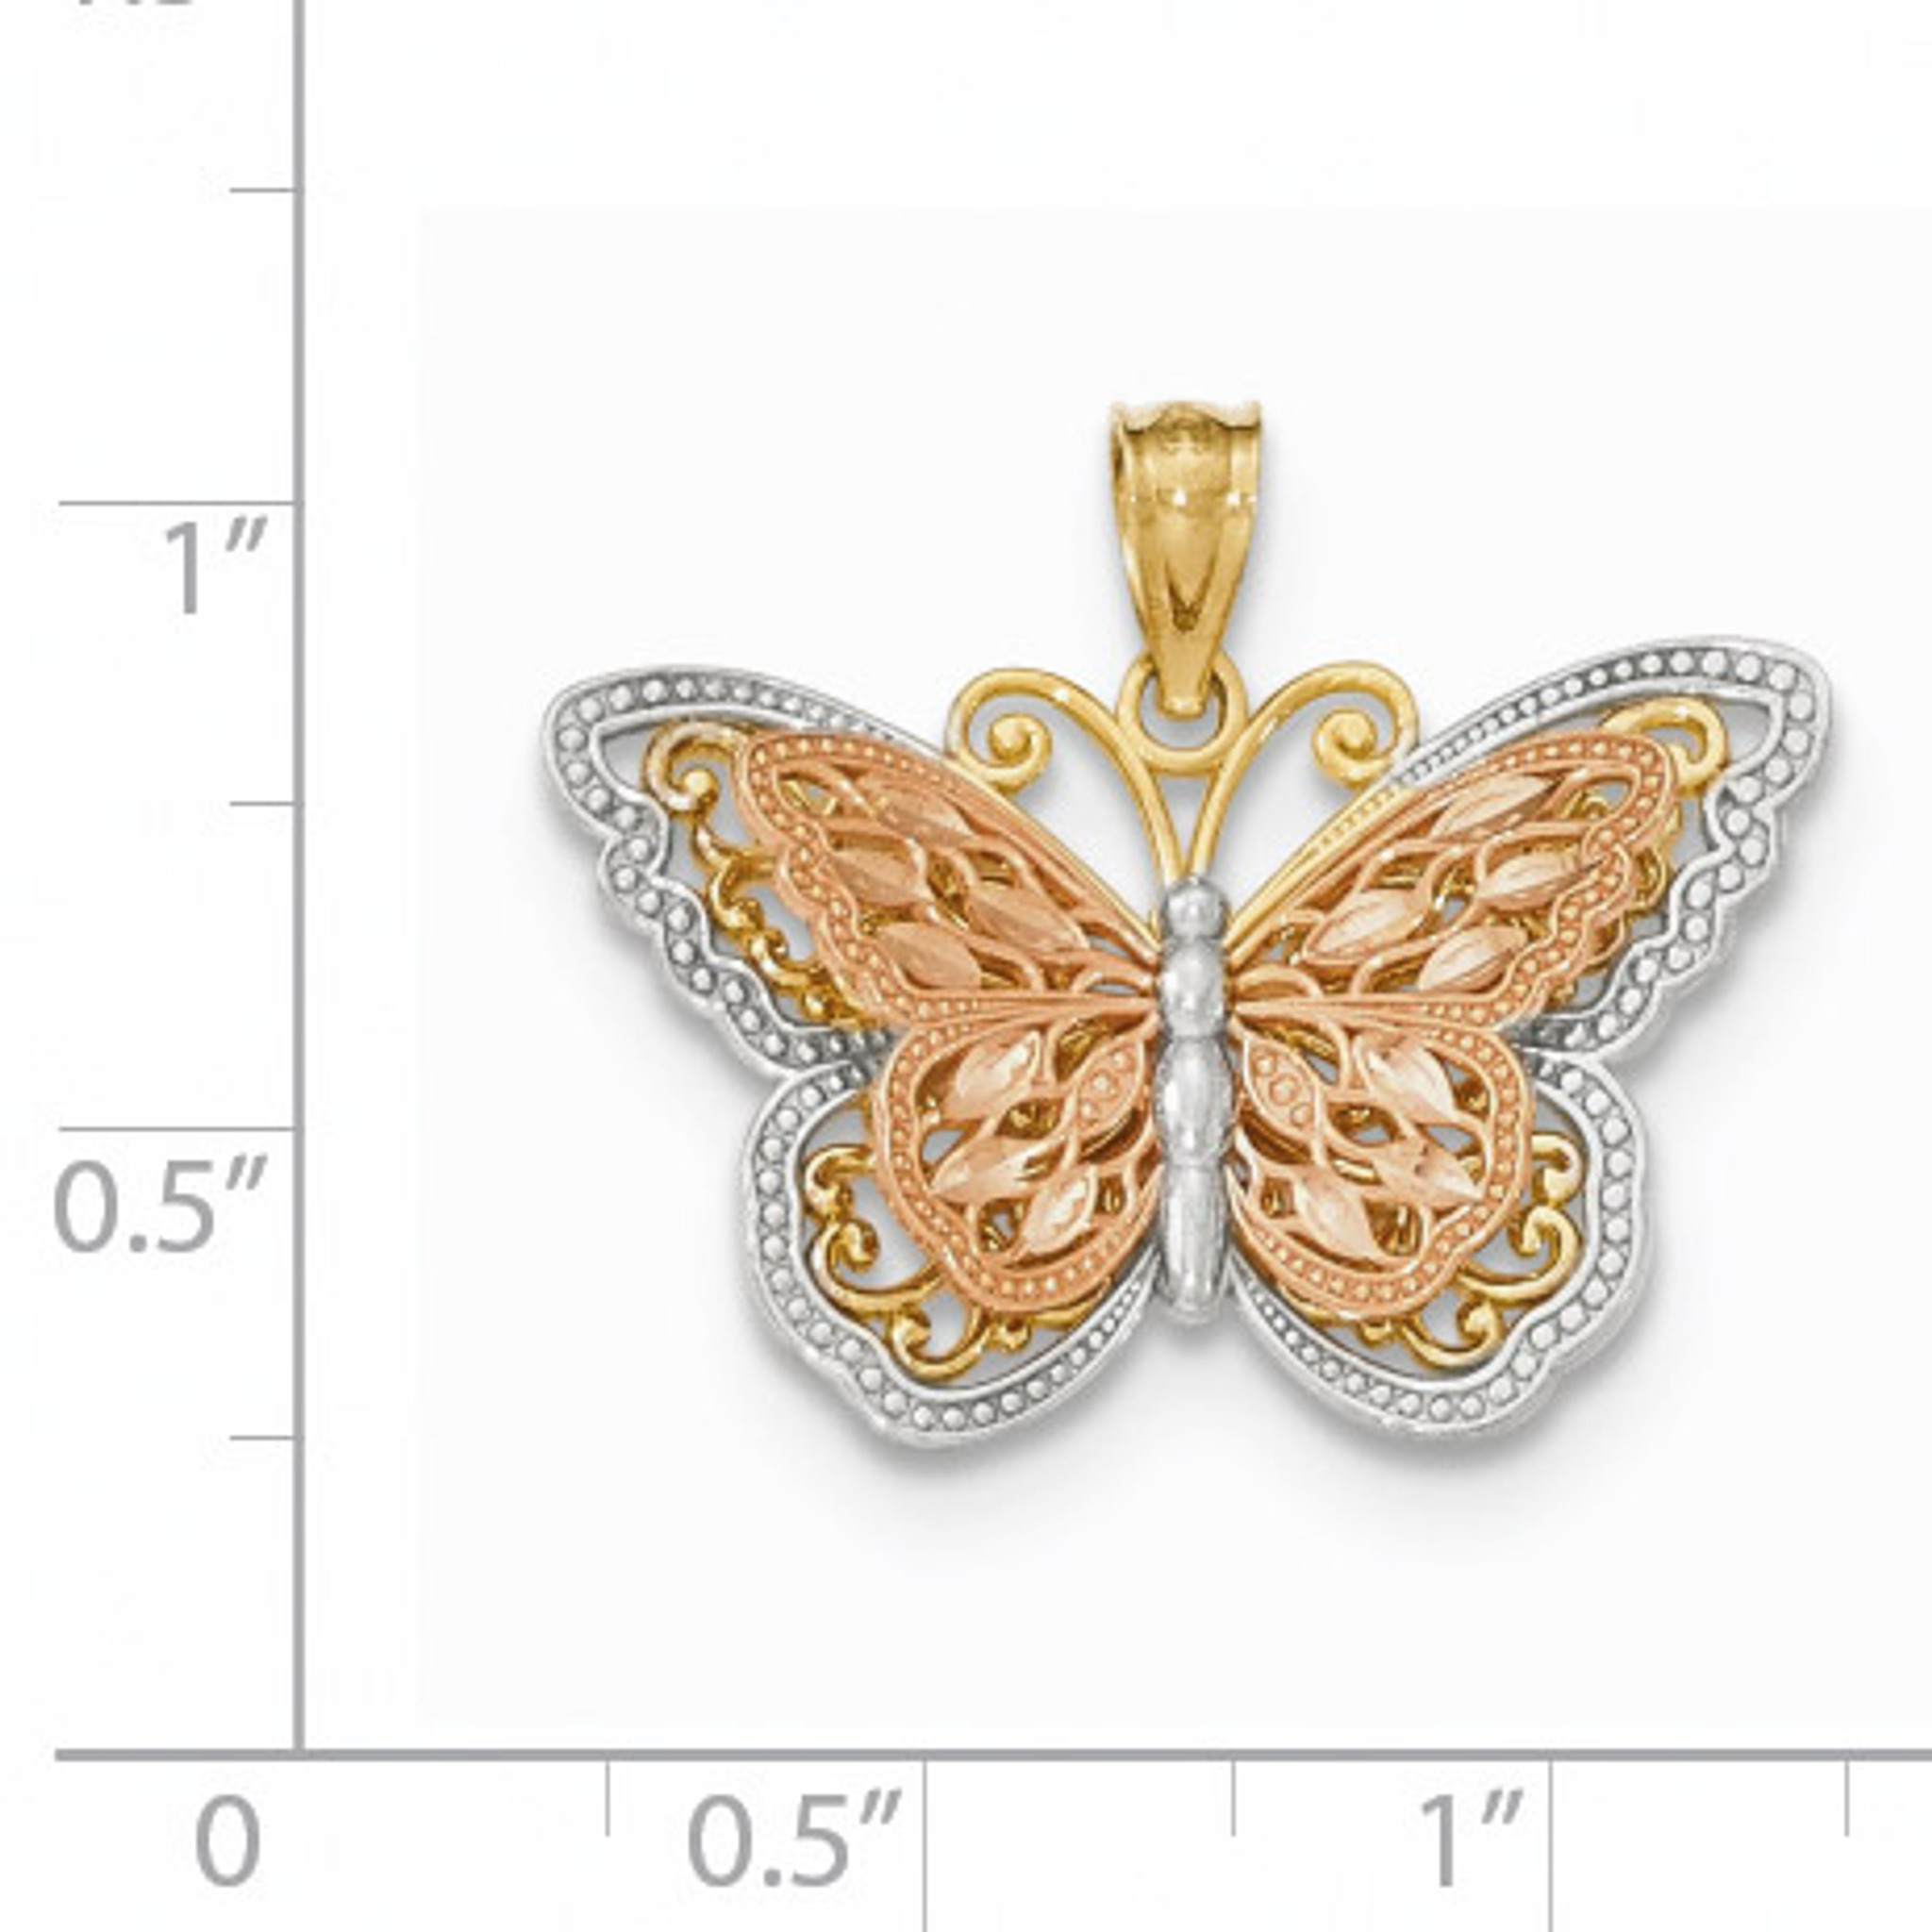 Details about  /14k 14kt Two-tone Tri-Color Butterfly In Round Frame Charm PENDANT 24.7 mm